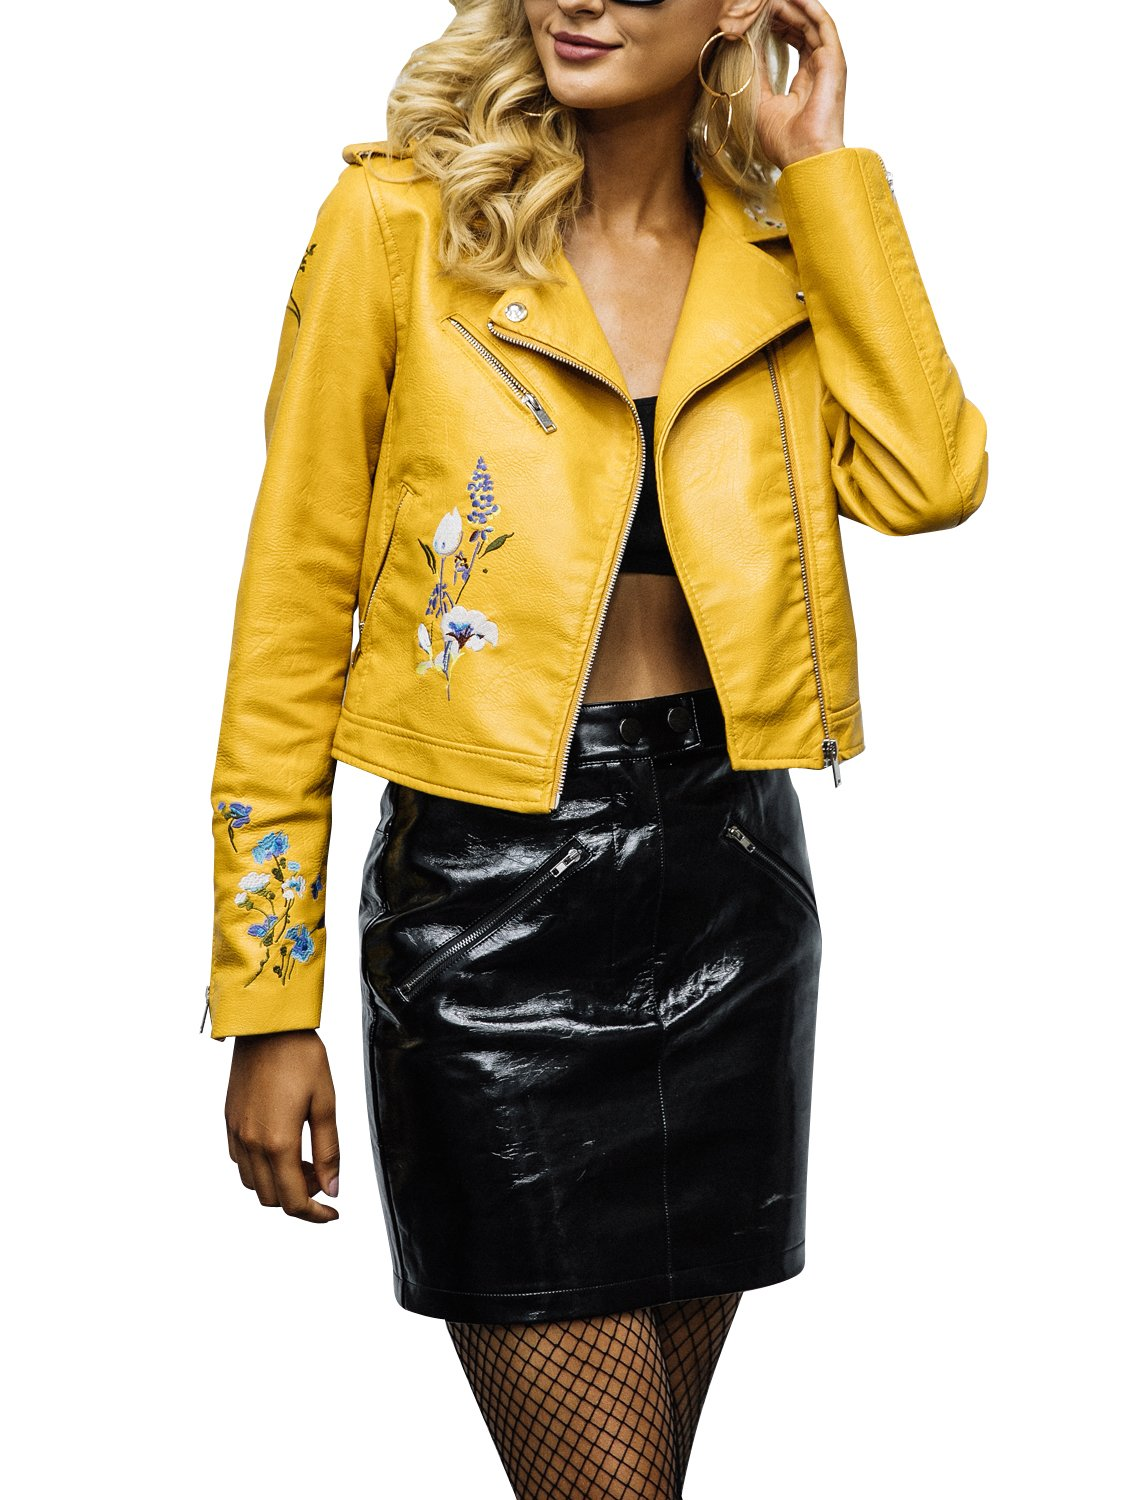 Glamaker Women's Embroidery Moto Short Faux leatherjacket Slim Floral Jackets Coat With Long Sleeves Yellow